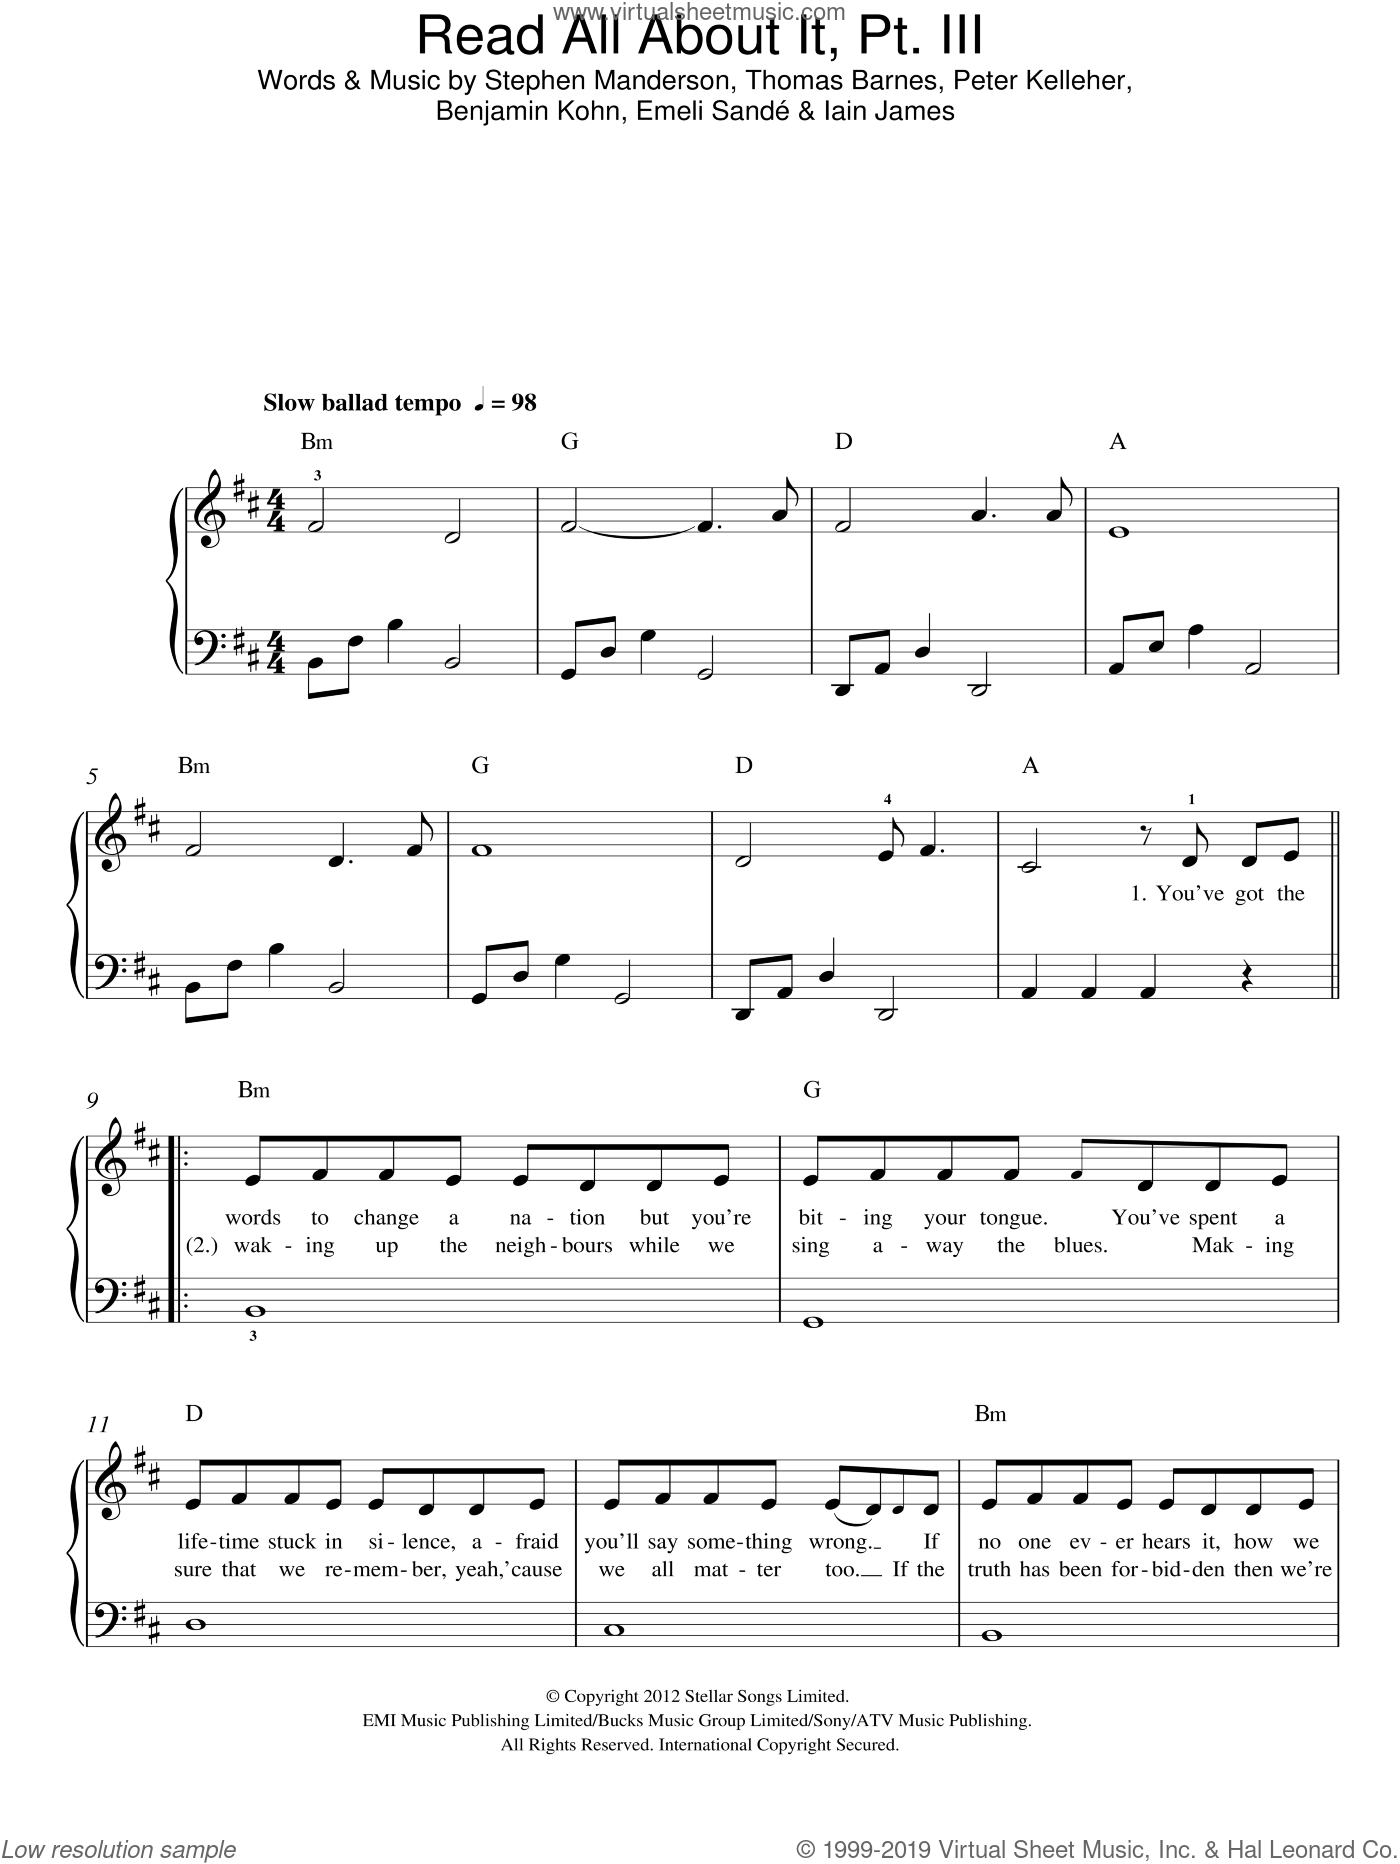 Read All About It, Part III sheet music for piano solo by Emeli Sande, Benjamin Kohn, Iain James, Peter Kelleher, Stephen Manderson and Thomas Barnes, easy skill level